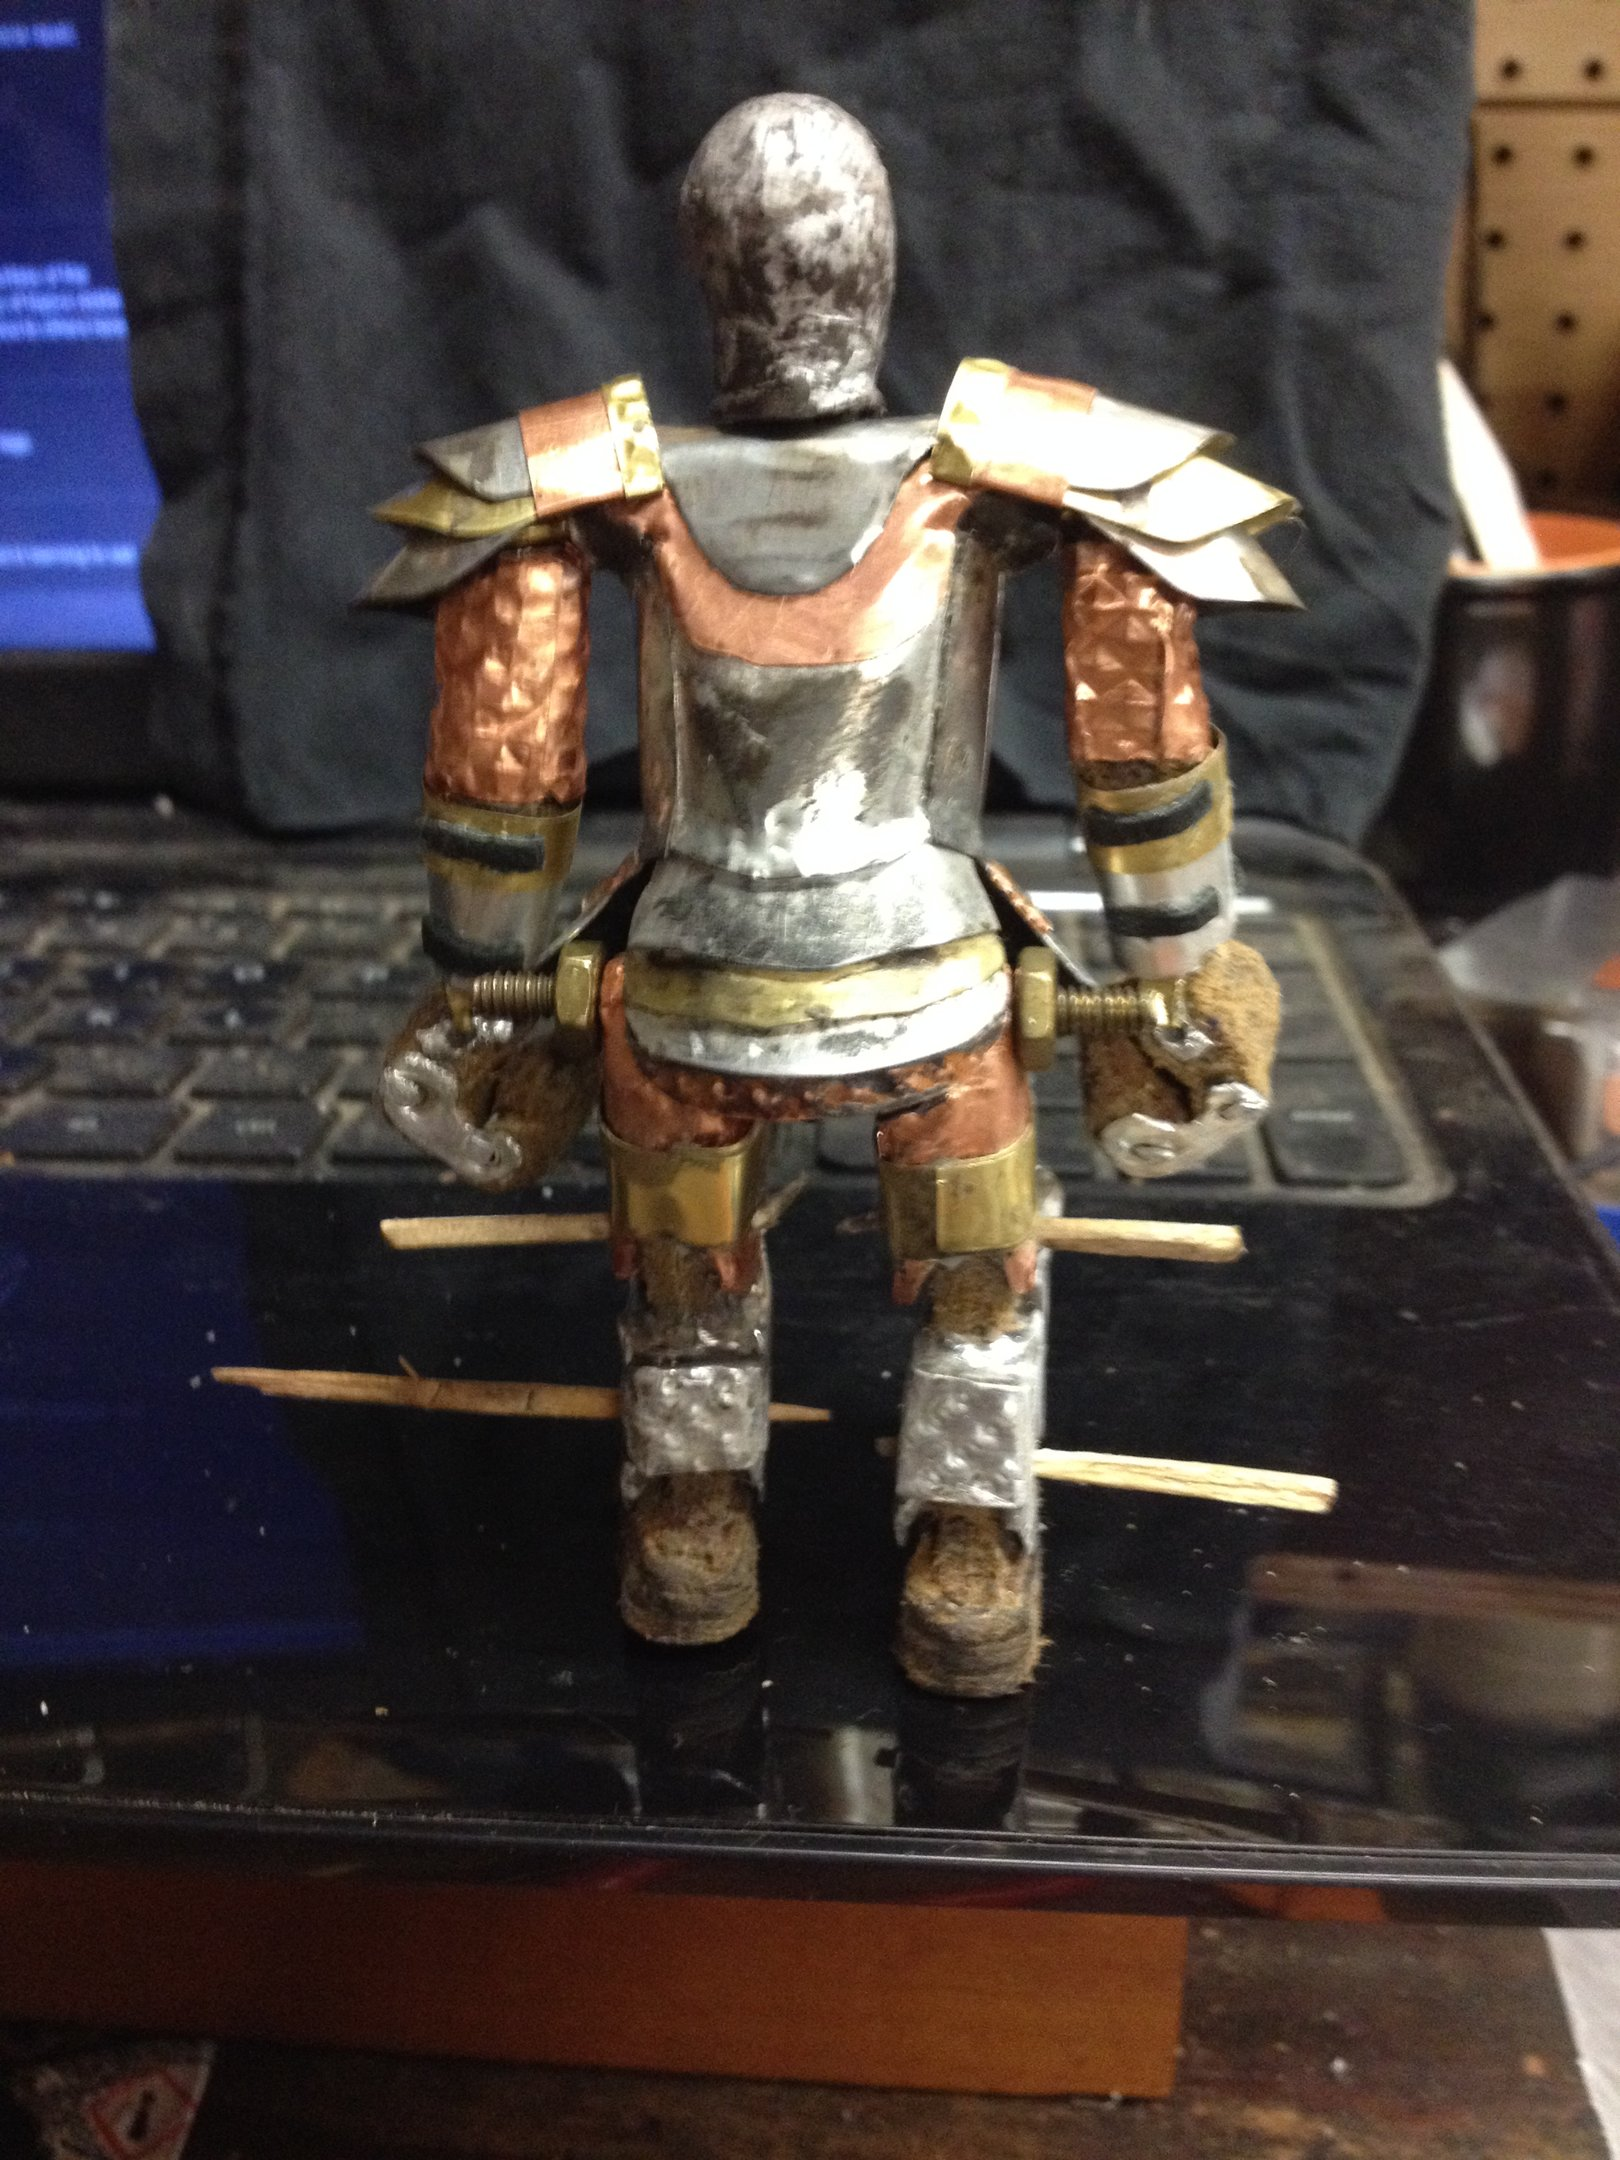 """img_0062-jpg.47145_The Faceless King (Bespoke 4"""" articulated action figure)_Art & Music_Squat the Planet_12:34 AM"""